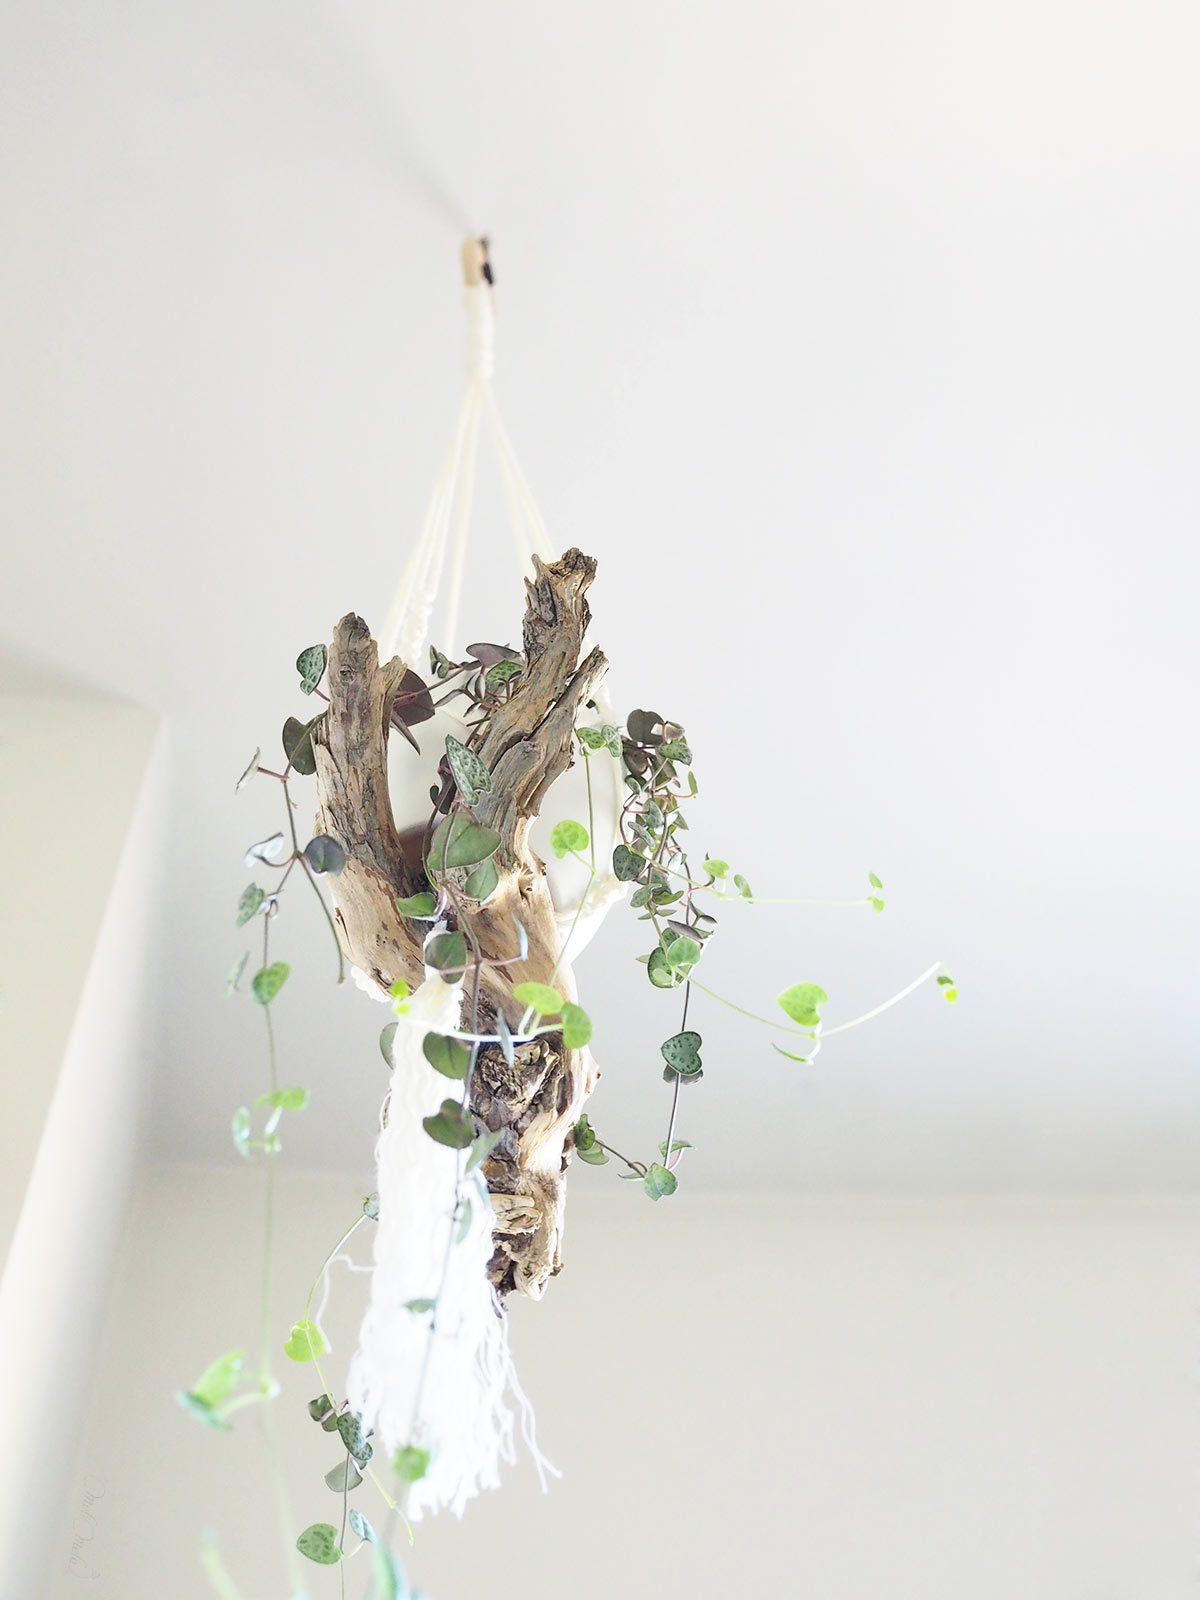 bois sculptural suspension macramé ceropegia woodii laboutiquedemelimelo